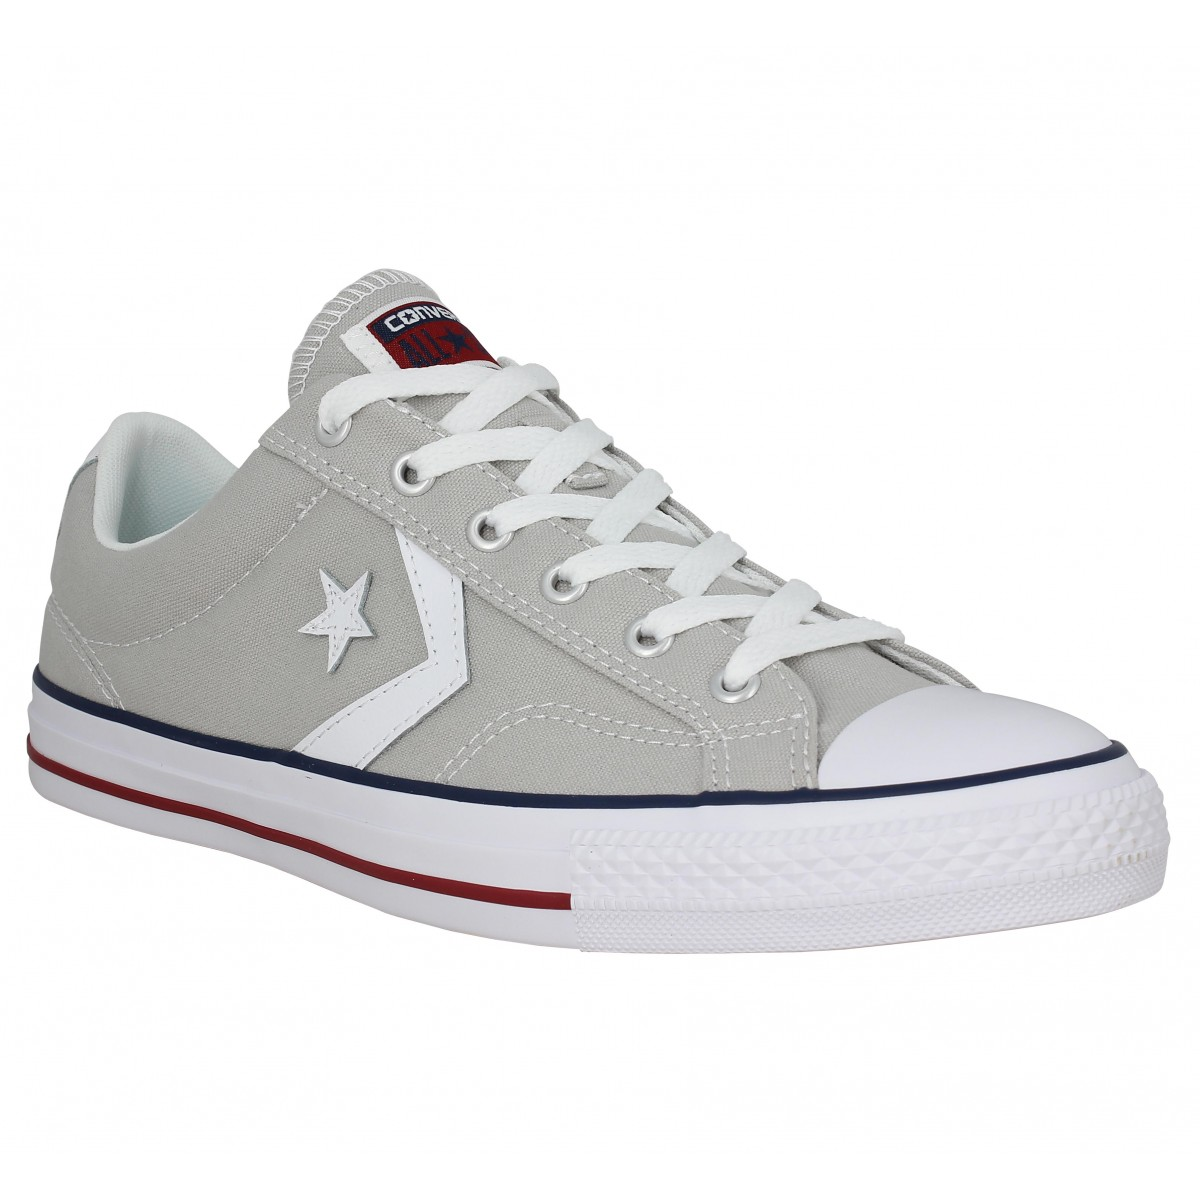 Baskets CONVERSE Star Player toile Homme Gris